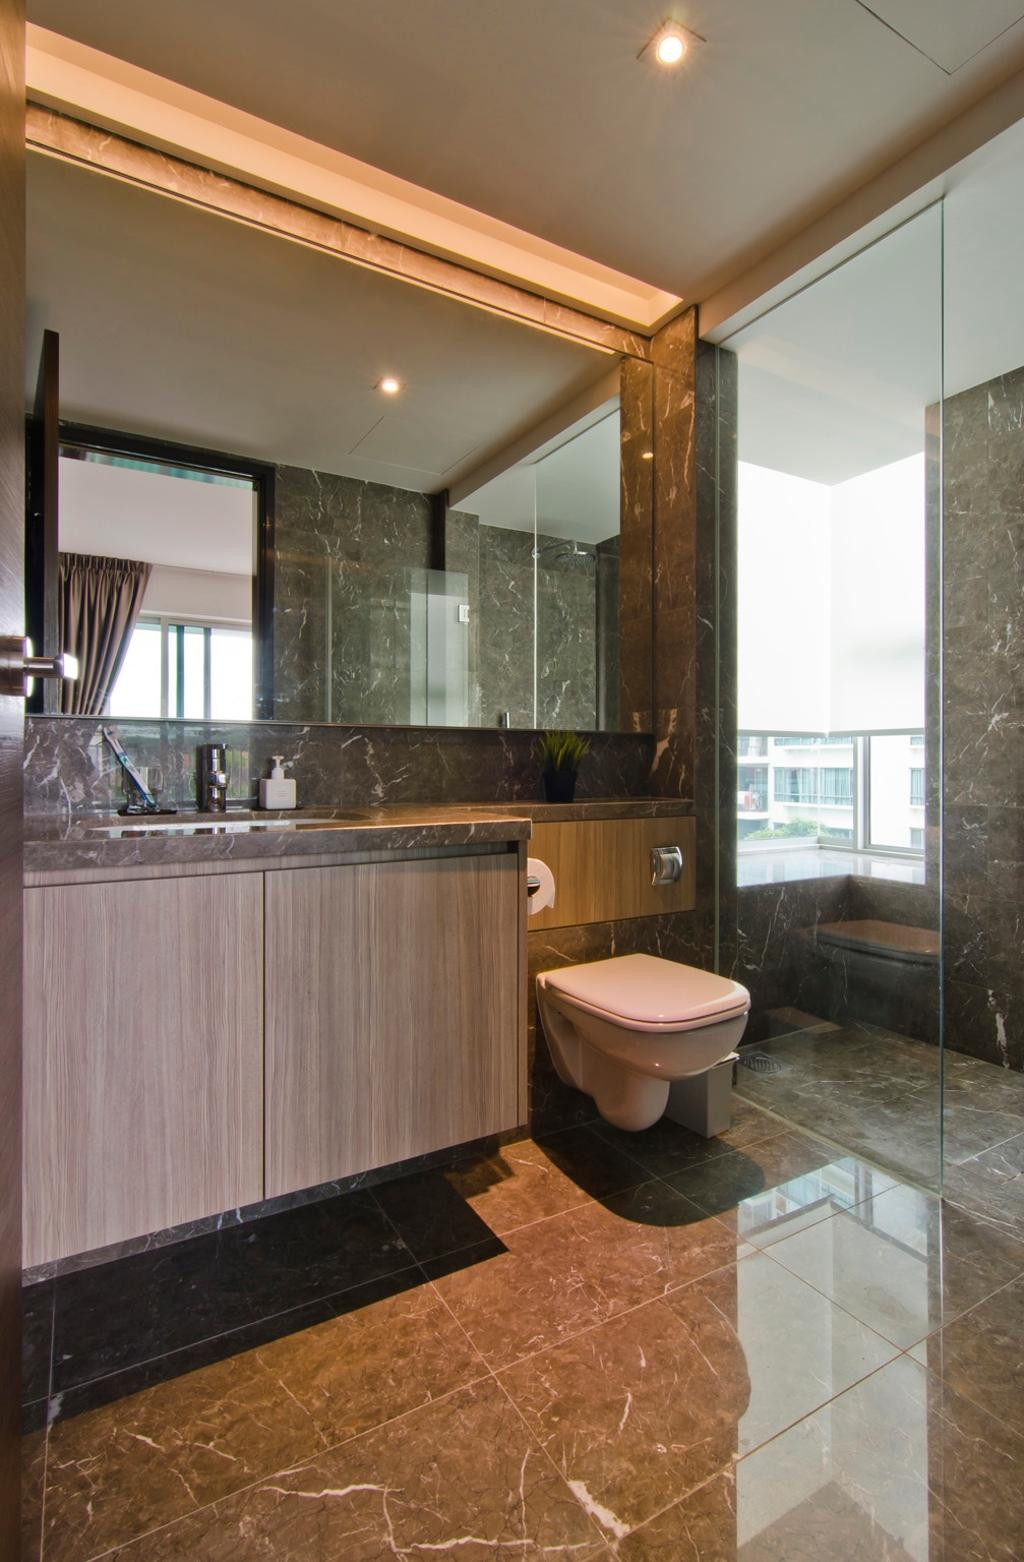 Modern, Condo, Bathroom, Tanah Merah Kecil, Interior Designer, Ideal Design Interior, Marble Flooring, Glass Cubicle, Wood Laminate, Wood, Laminate, Mirror, Concealed Lighting, Marble Wall, Muted Tones, Bathroom Counter, Tile, Tiles